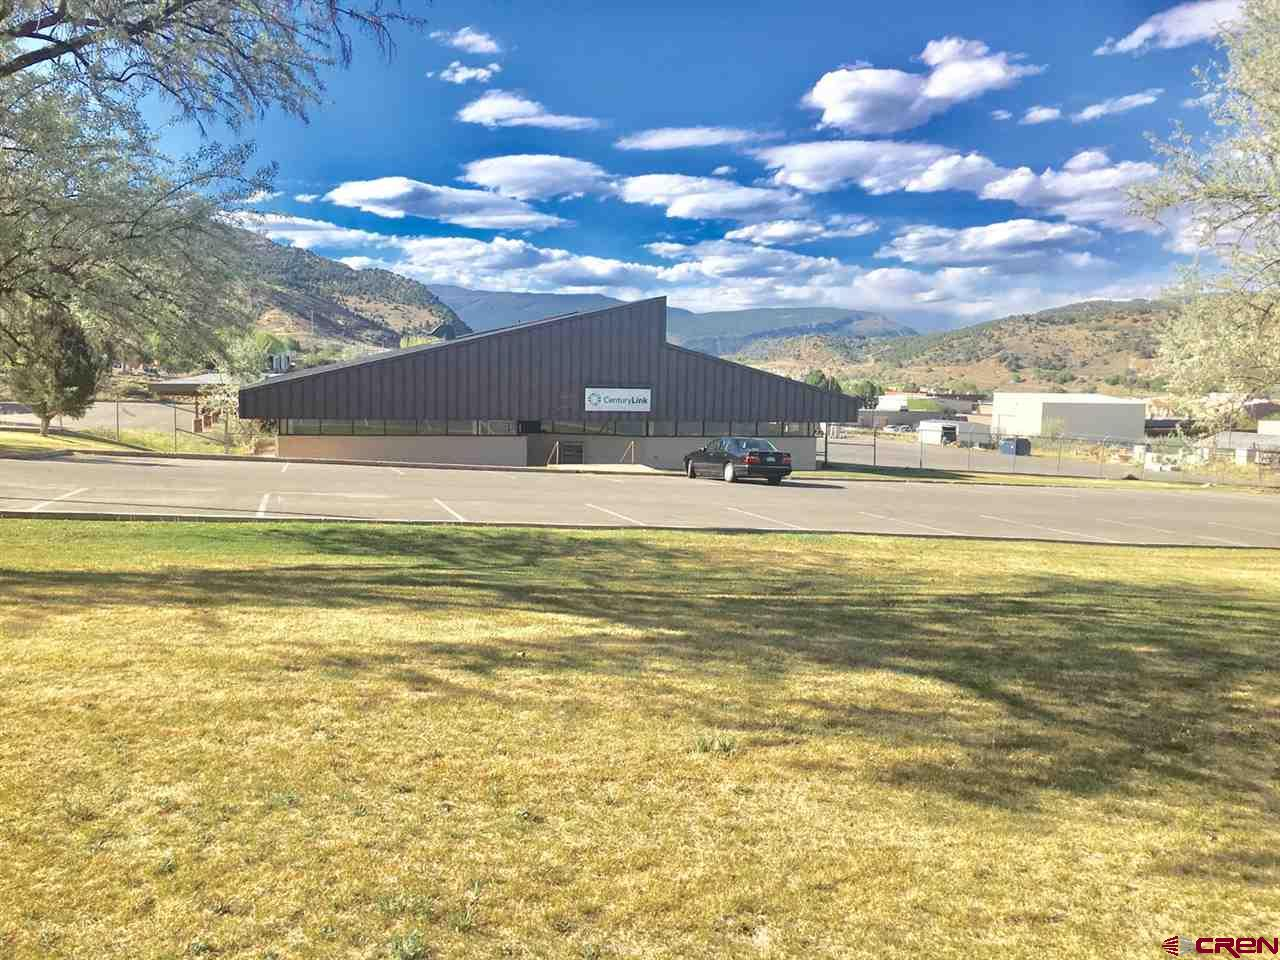 4 acre prime commercial site and/or industrial use in Bodo Park in the City of Durango, Colorado. Existing 5,329 sf office/warehouse, with two 5,500 sf covered carports with electrical piped to each parking spot.  Includes a portion of the carport that is double height. The site may possibly be subdivided into two or 3 lots subject to City approval. The site was originally purpose built for Mountain Bell and needs cosmetic upgrades.  Property includes newer asphalt throughout with a parking lot in front of the building in addition to large fenced area that is partially paved. Long-term tenant is moving out offering opportunity to re-purpose and maximize use of the property. Seller is open to sale or lease, and will entertain build-to-suit or joint business proposals.